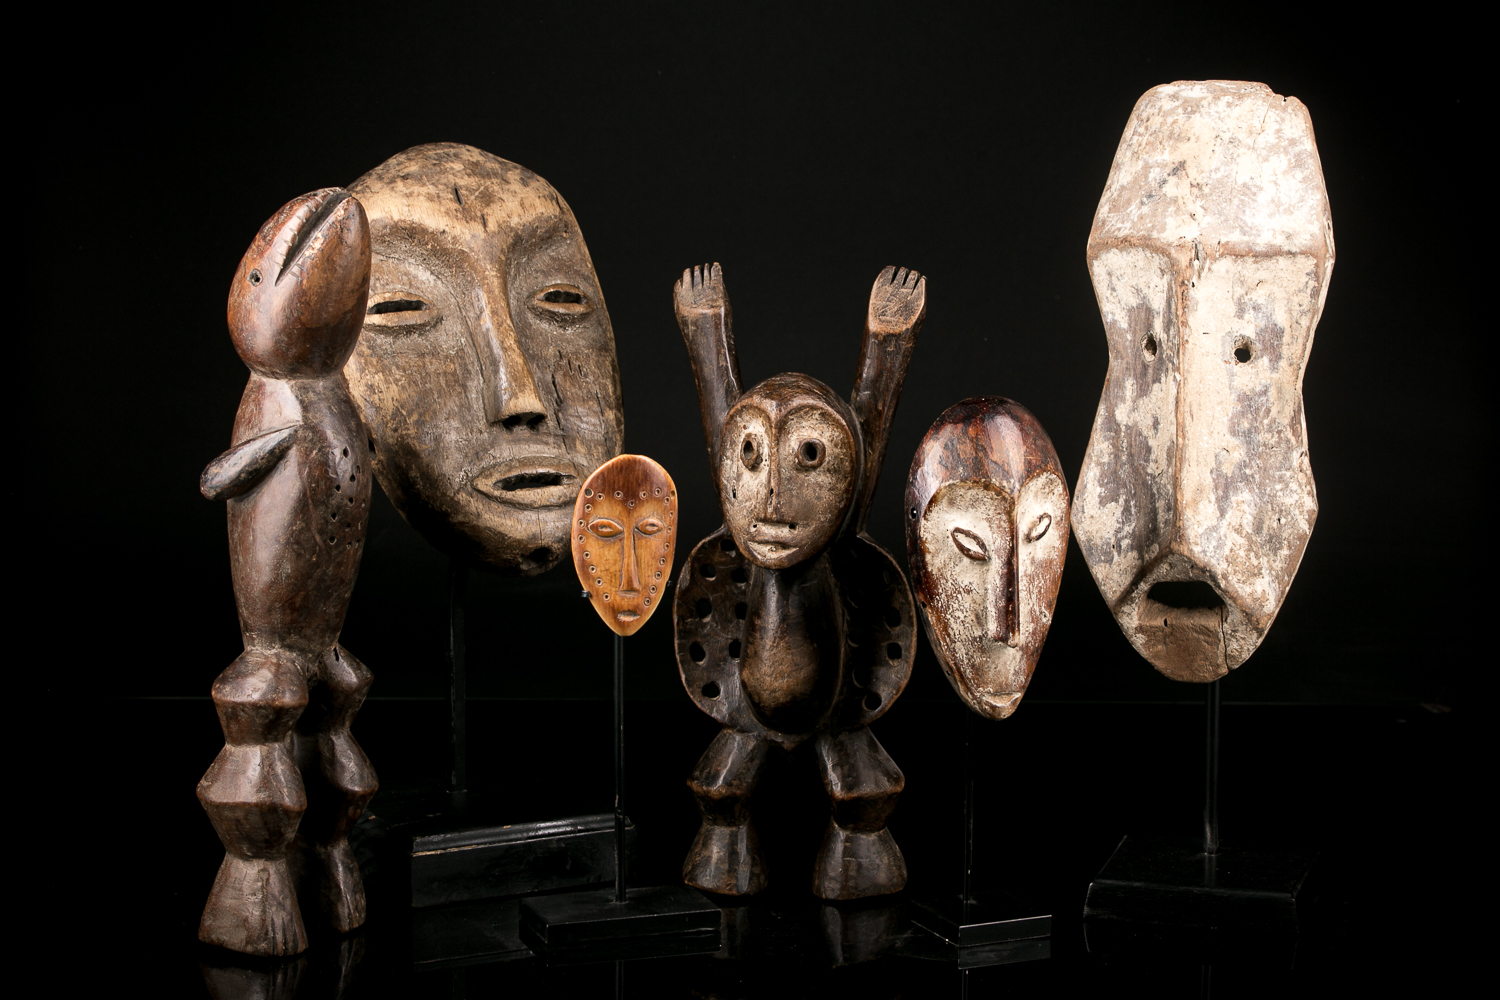 Dedicated Lega art special sale in our african arts gallery